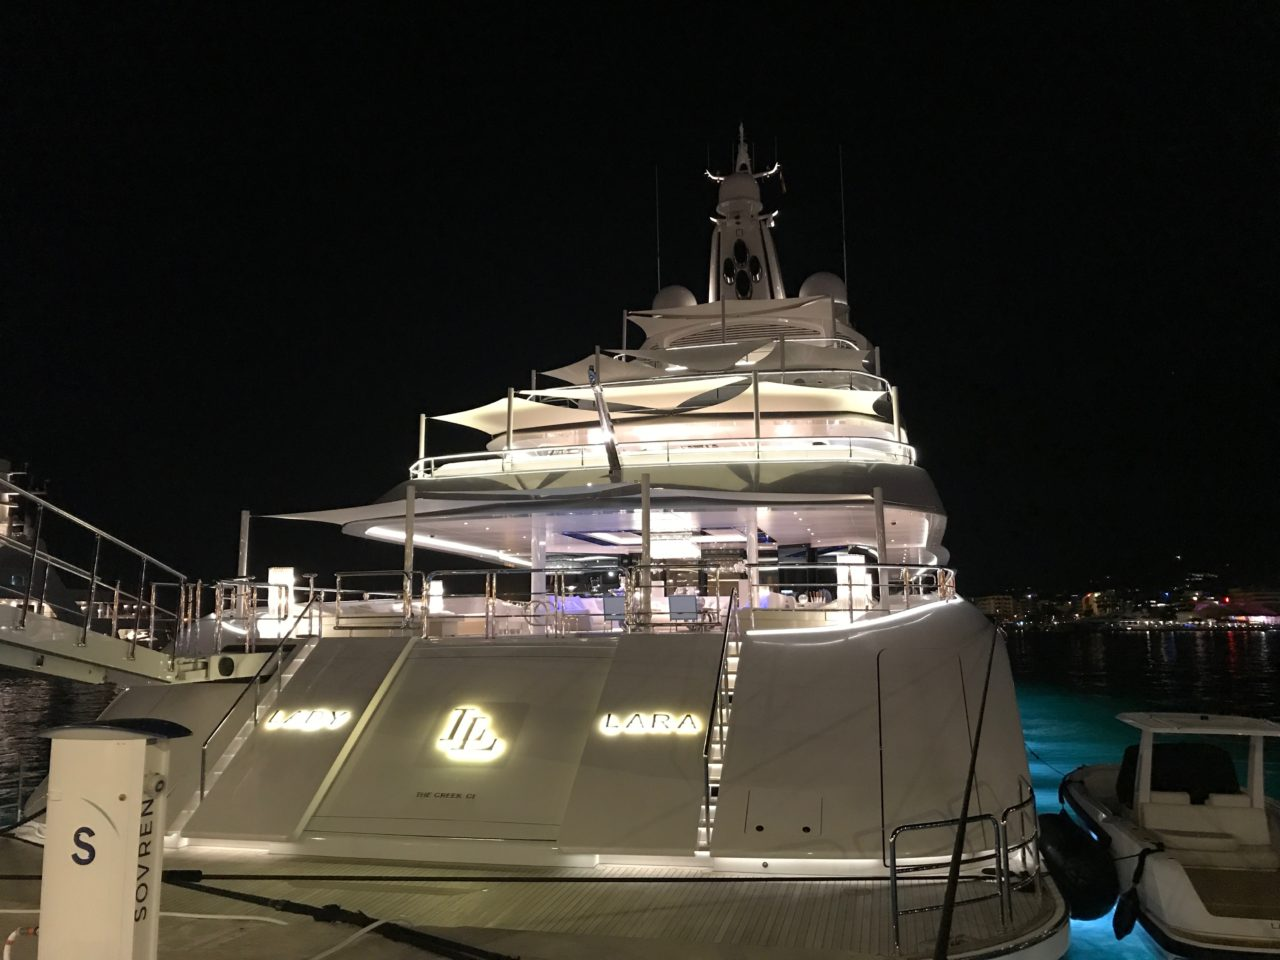 Rear Super Yacht Docked In Harbor In Ibiza